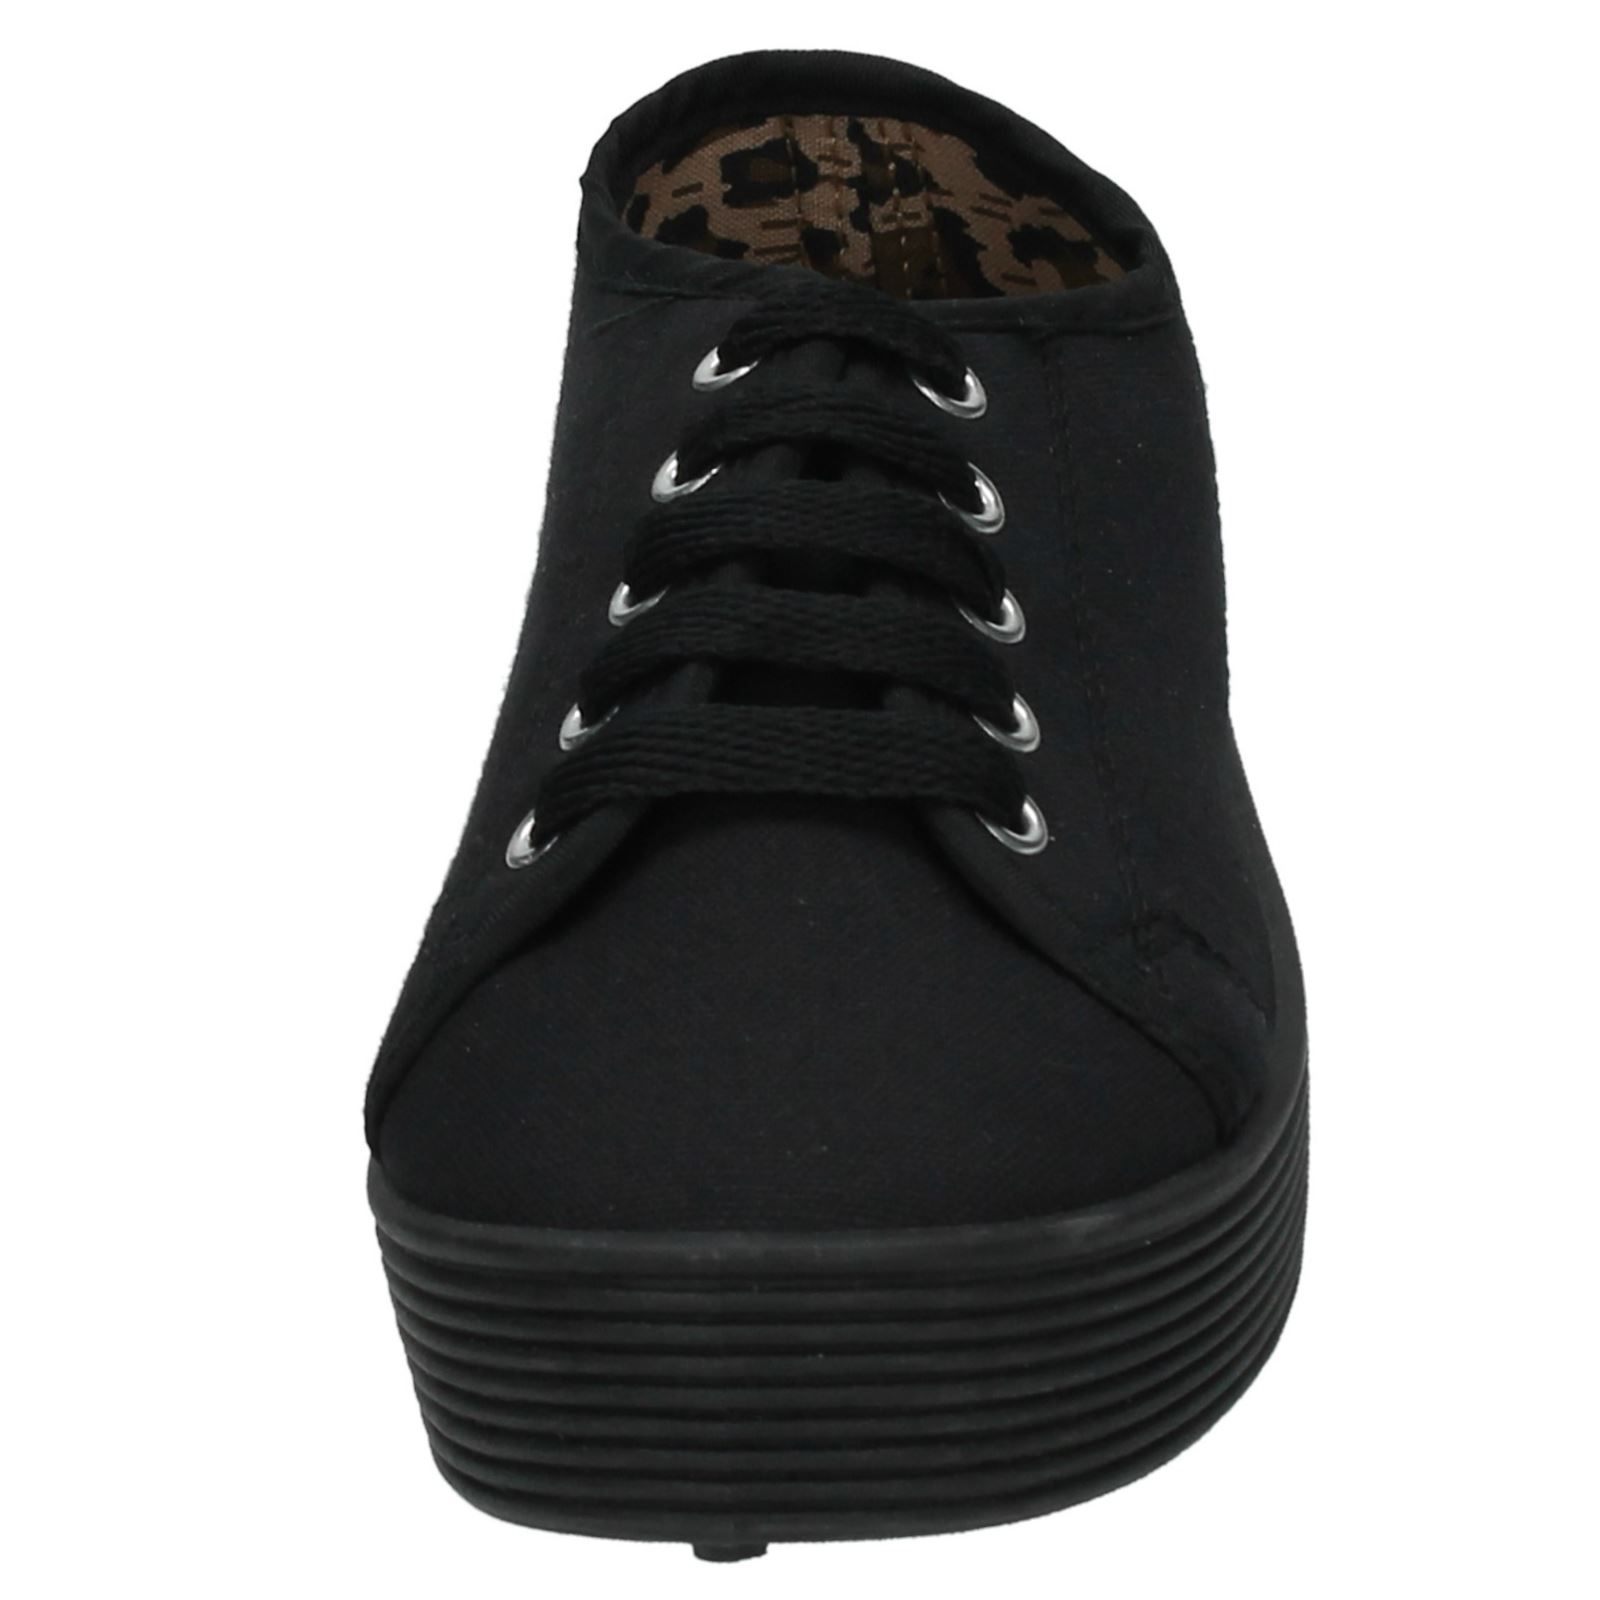 Girls Spot On Chunky Sole Casual Pumps - H3019